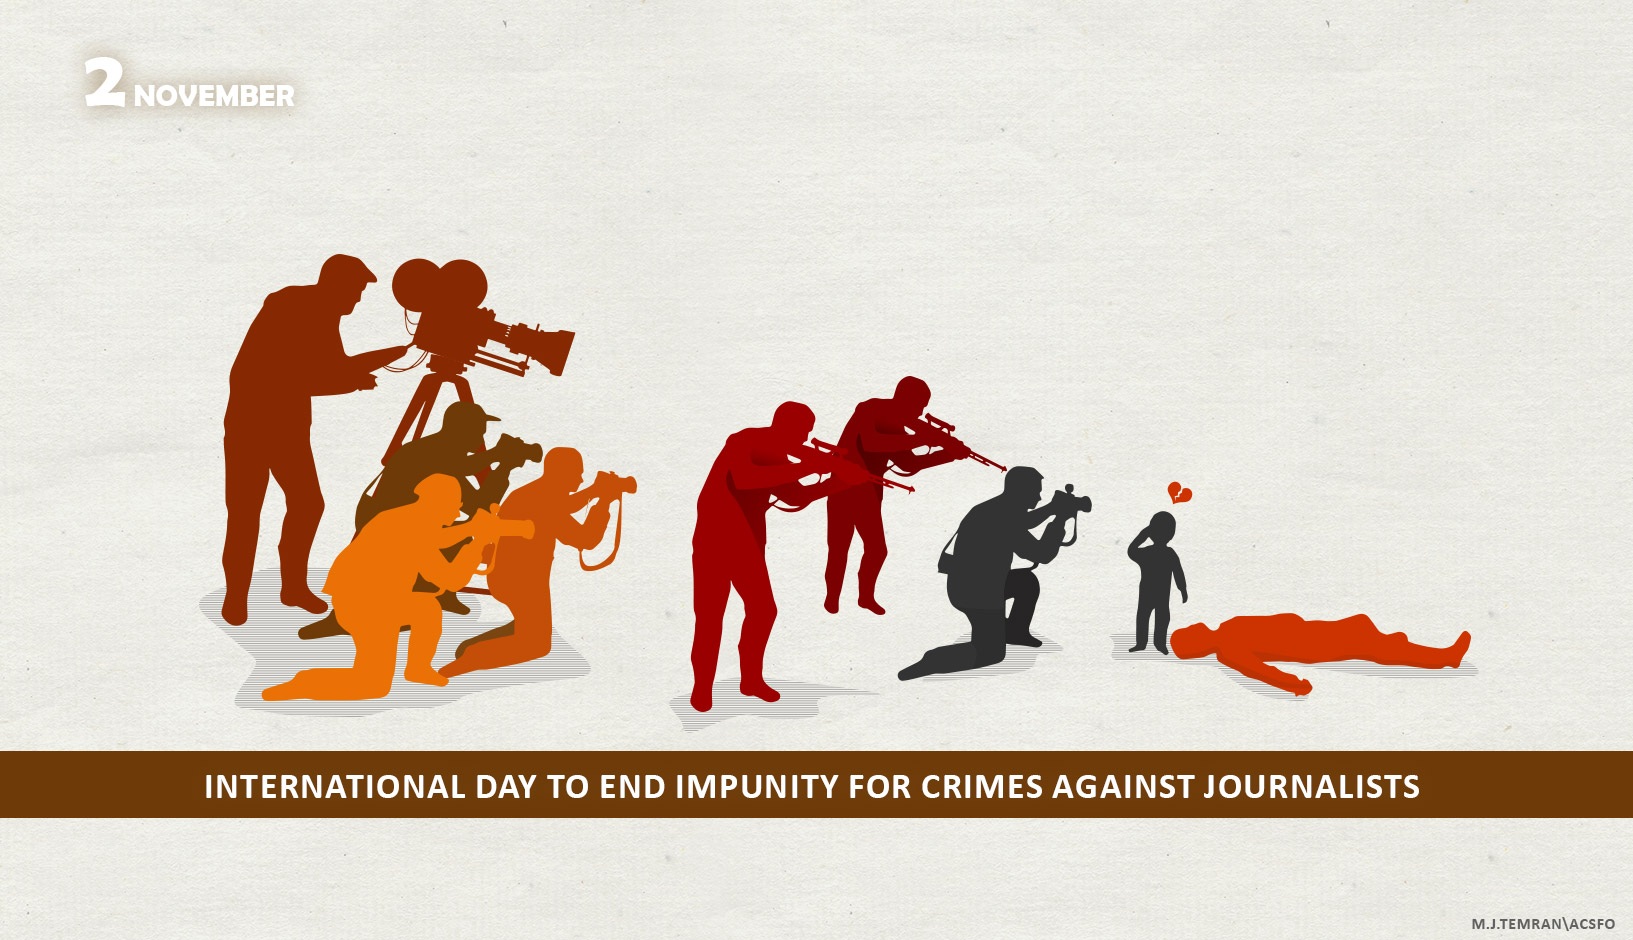 International-Day-to-End-Impunity-for-Crimes-against-Journalists-2-november